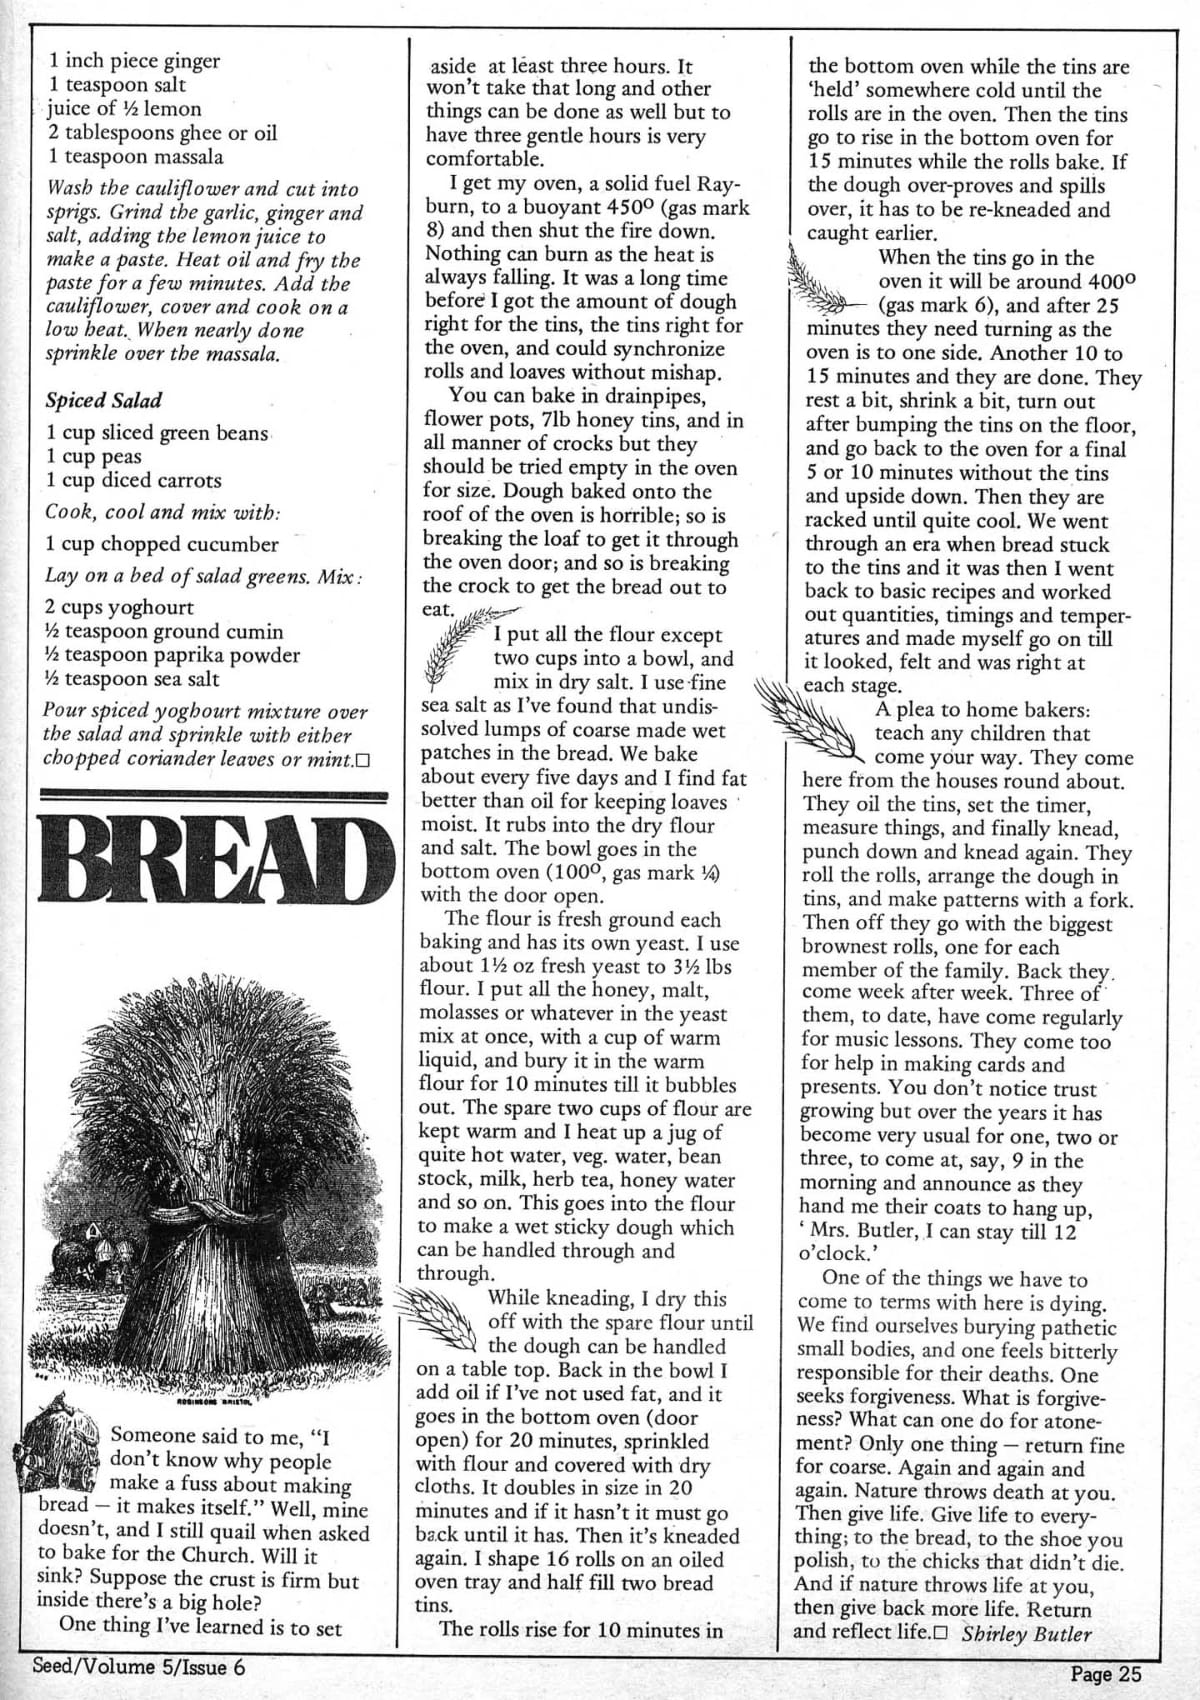 Seed Vol 5 no 6 June 1976 p 25 — Craig Sams